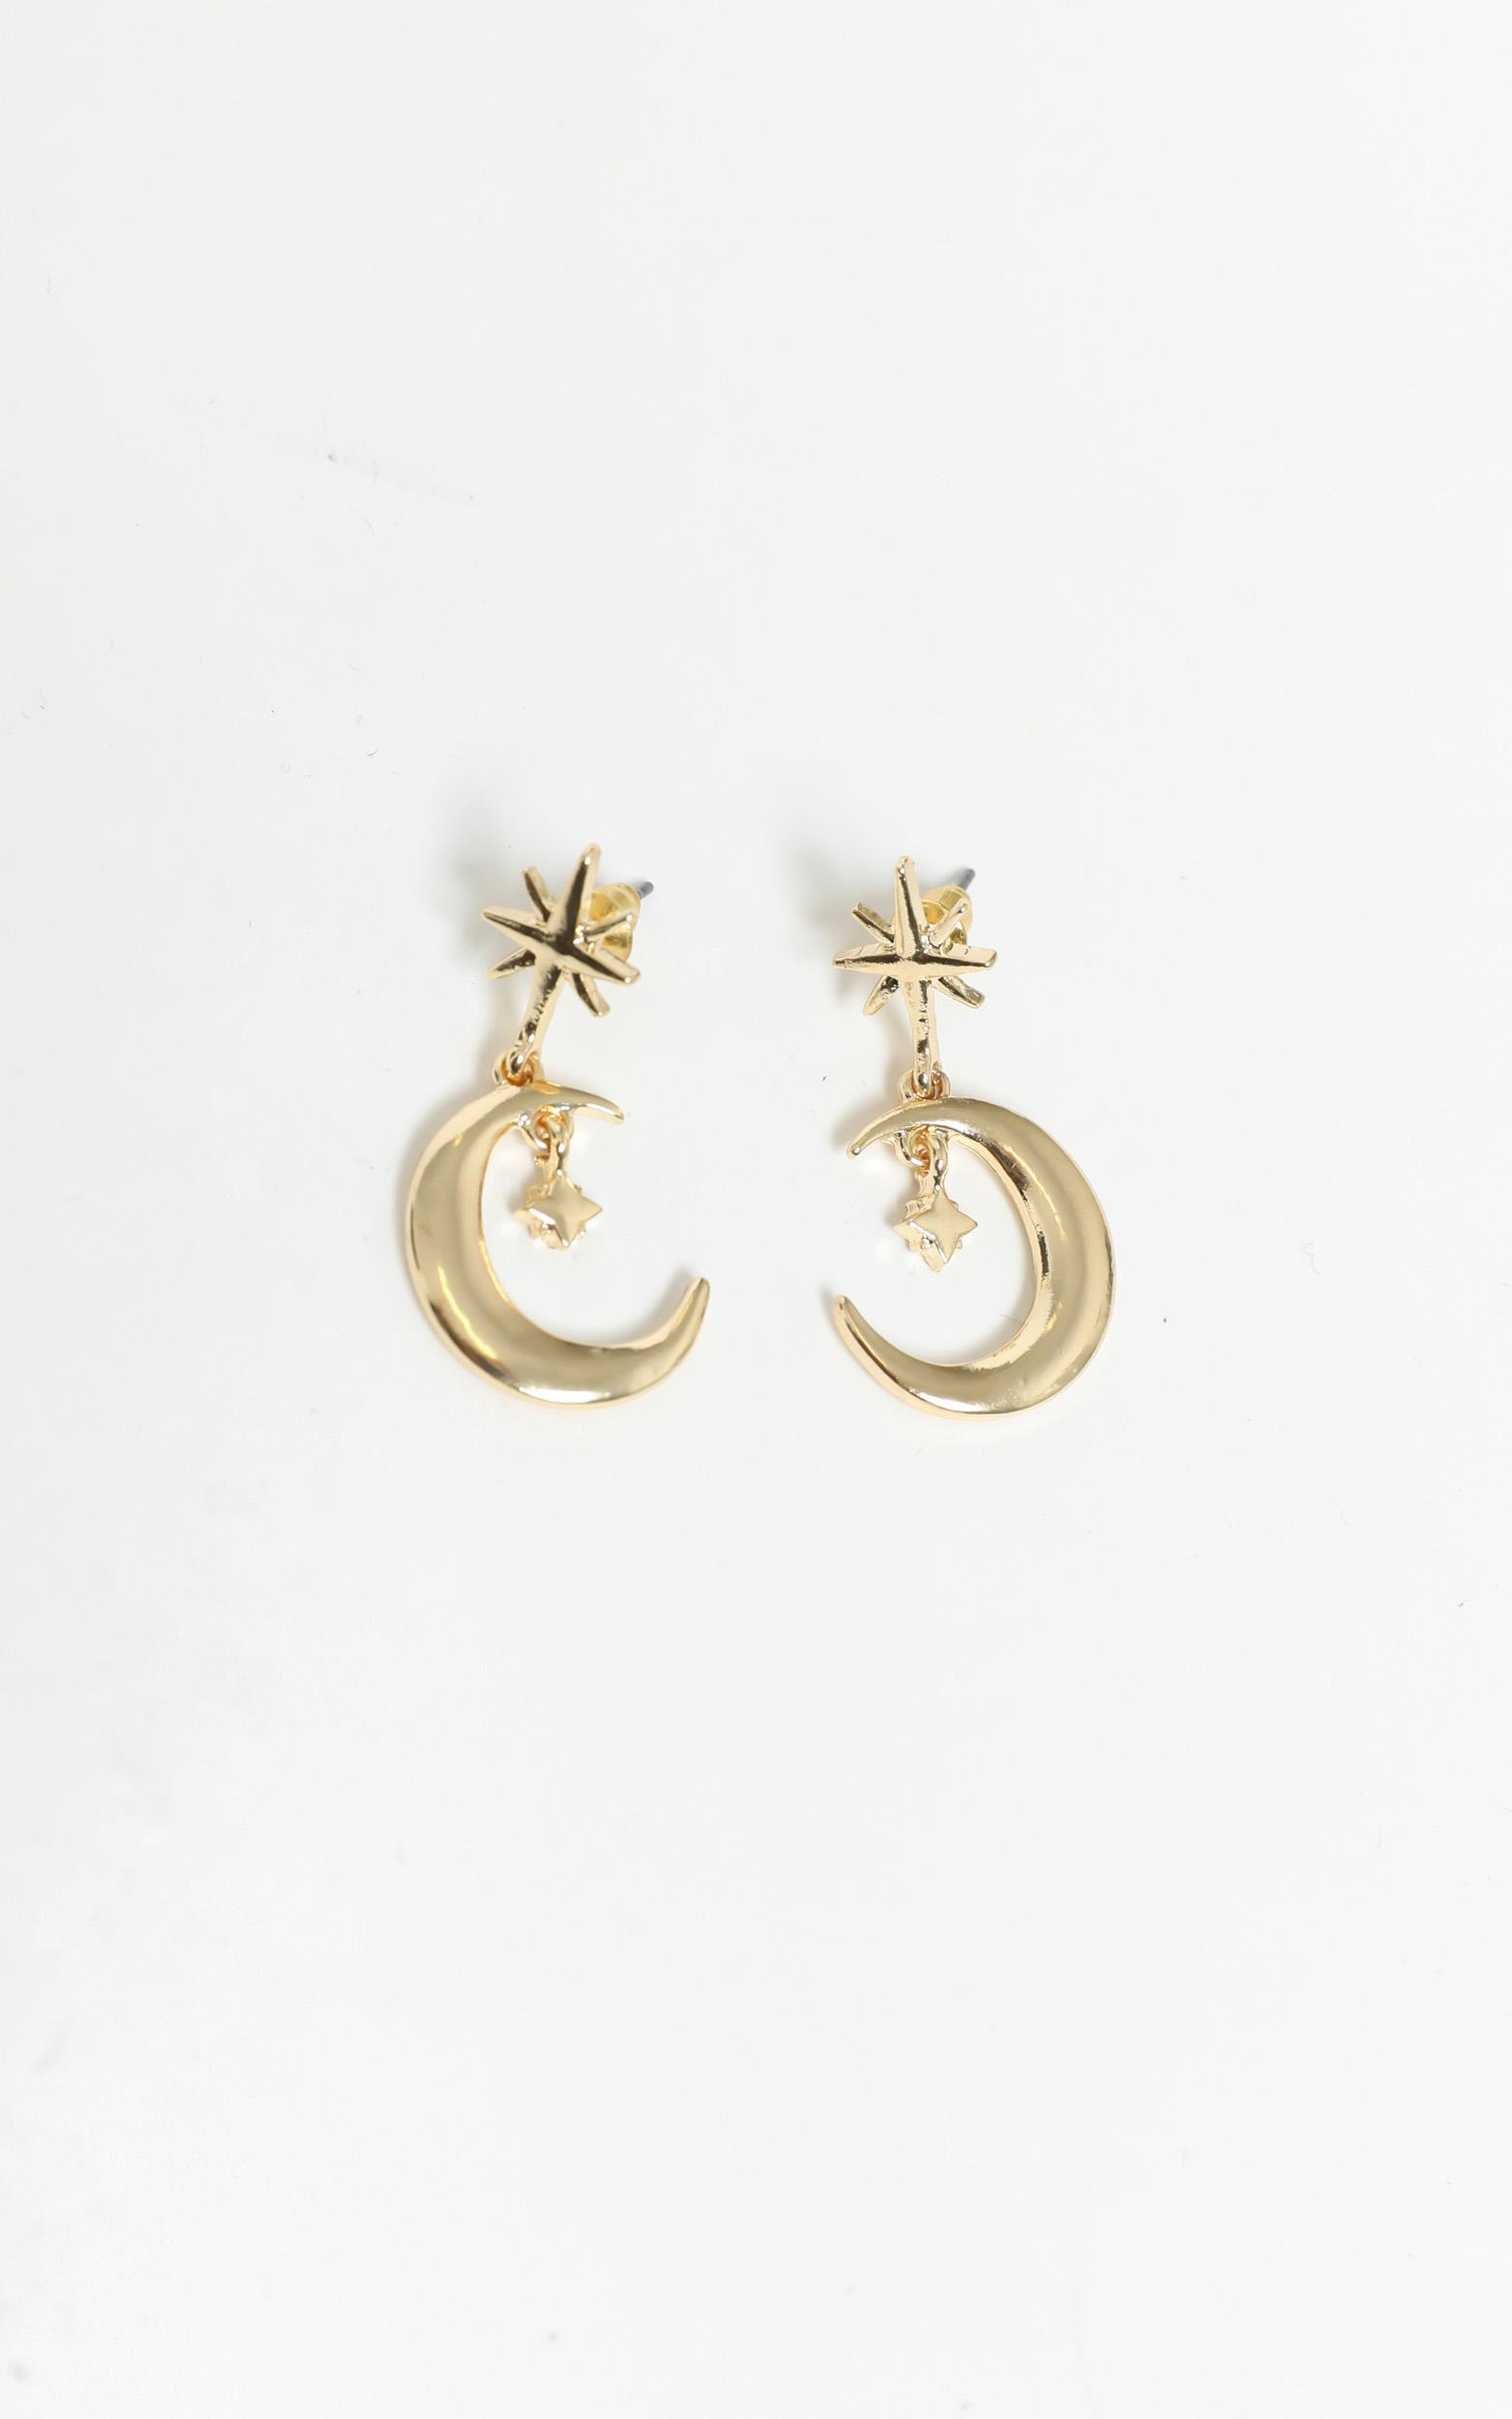 Sorrento Earrings in Gold, , hi-res image number null